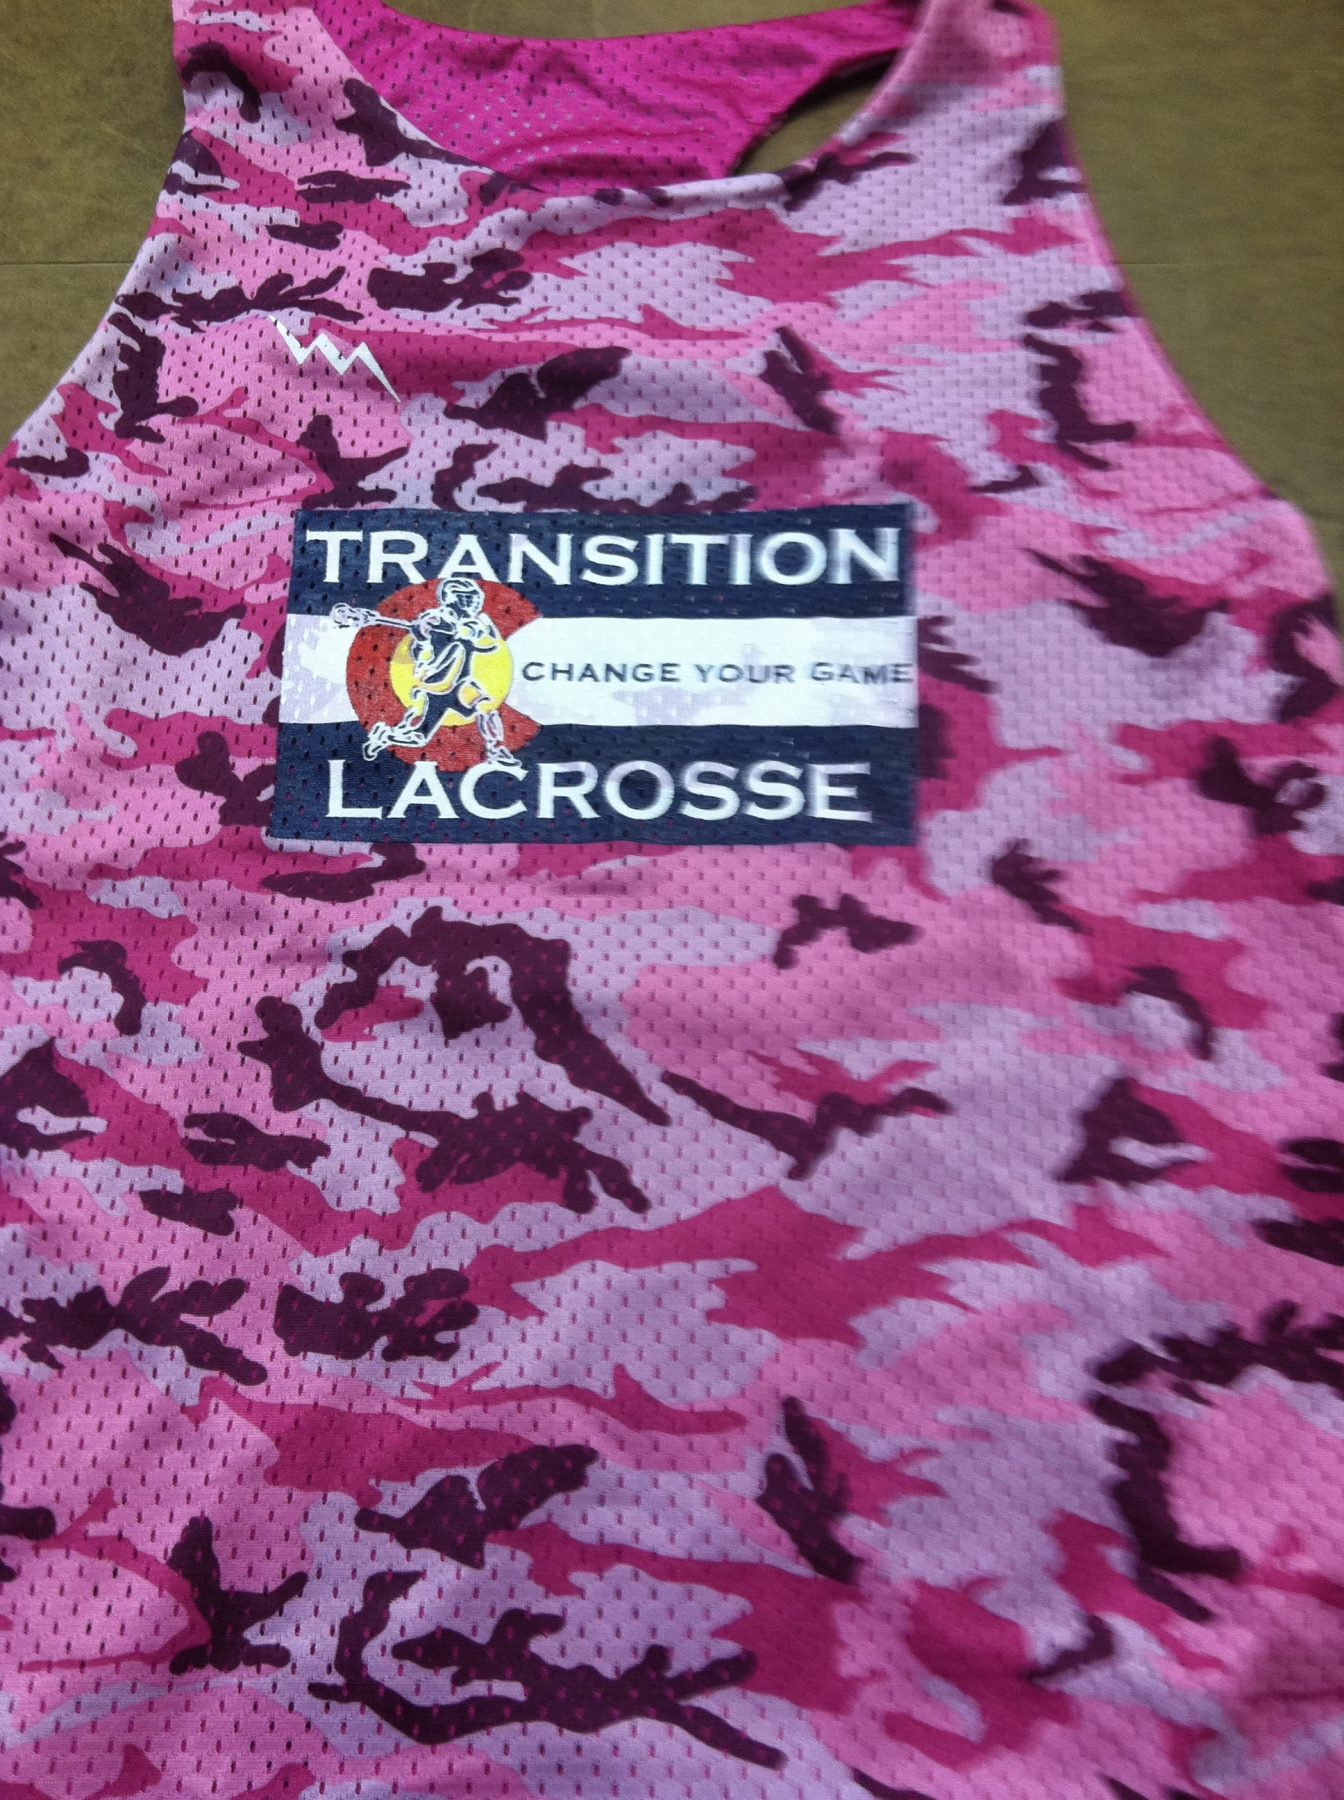 transition lacrosse pinnies